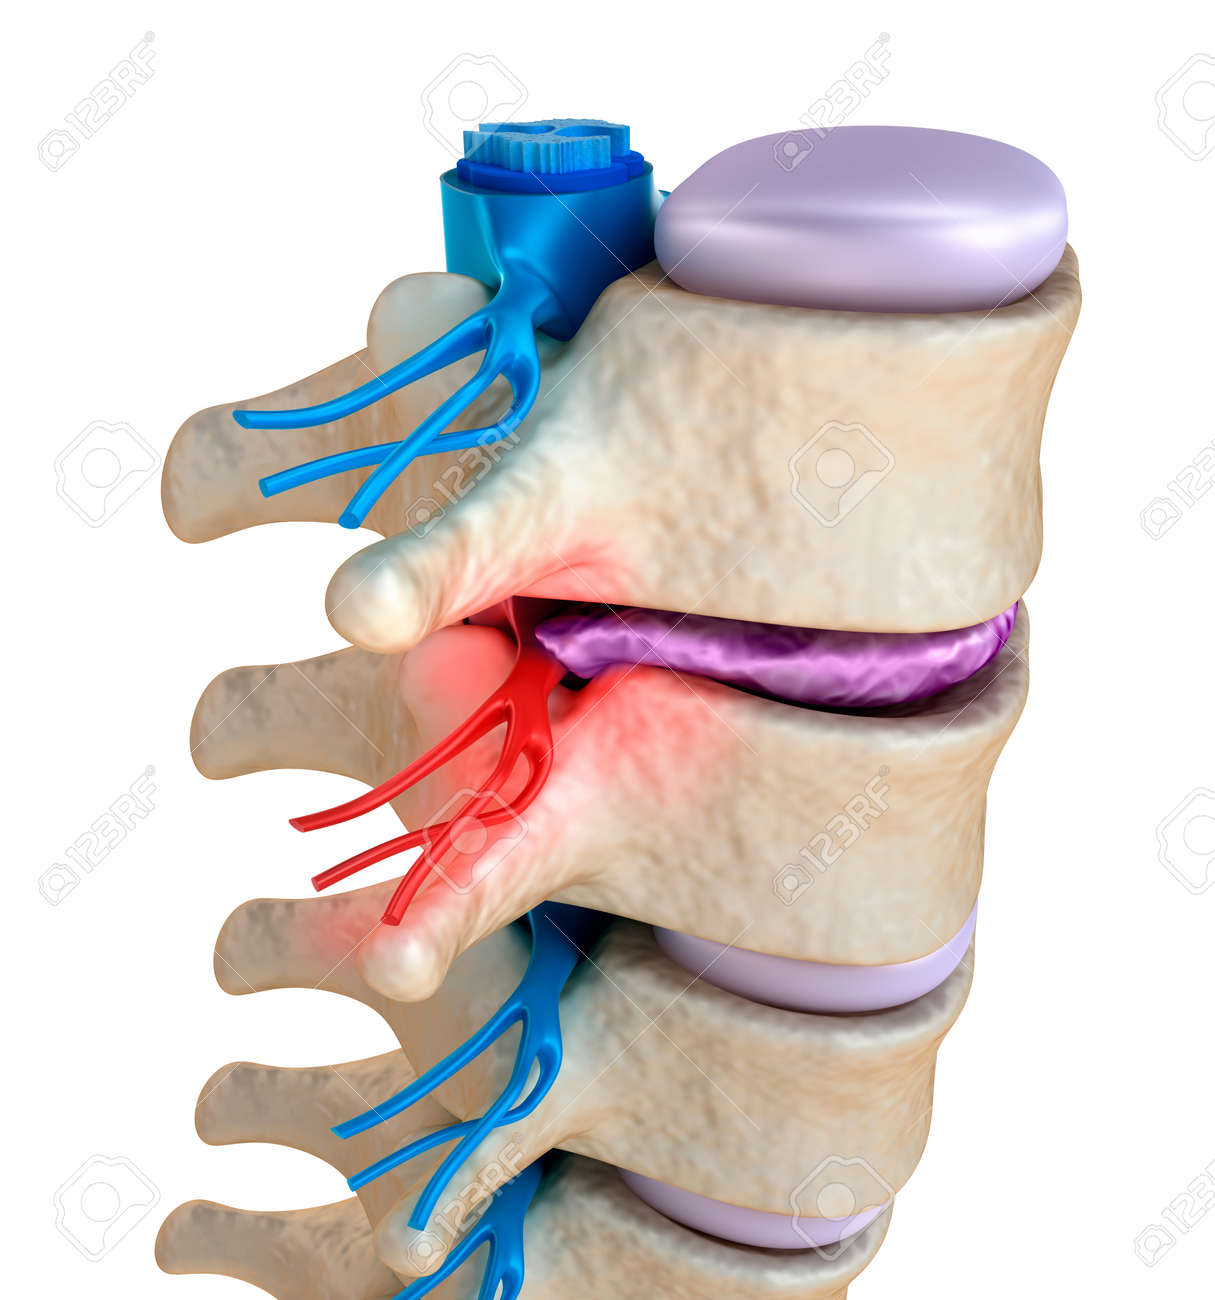 Spinal cord under pressure of bulging disc Stock Photo - 40009616